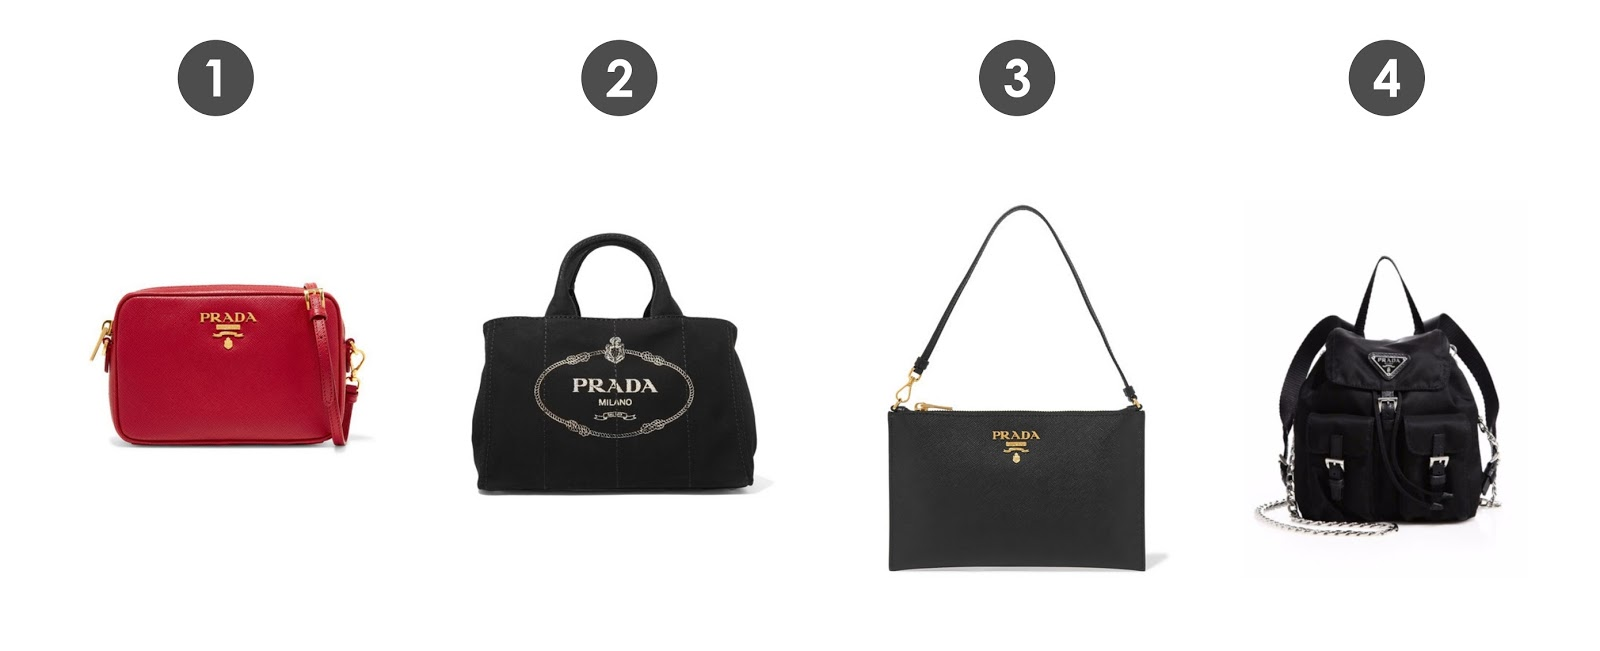 2e19dd3647ba ... new Prada bags I ve been lusting after. In this list